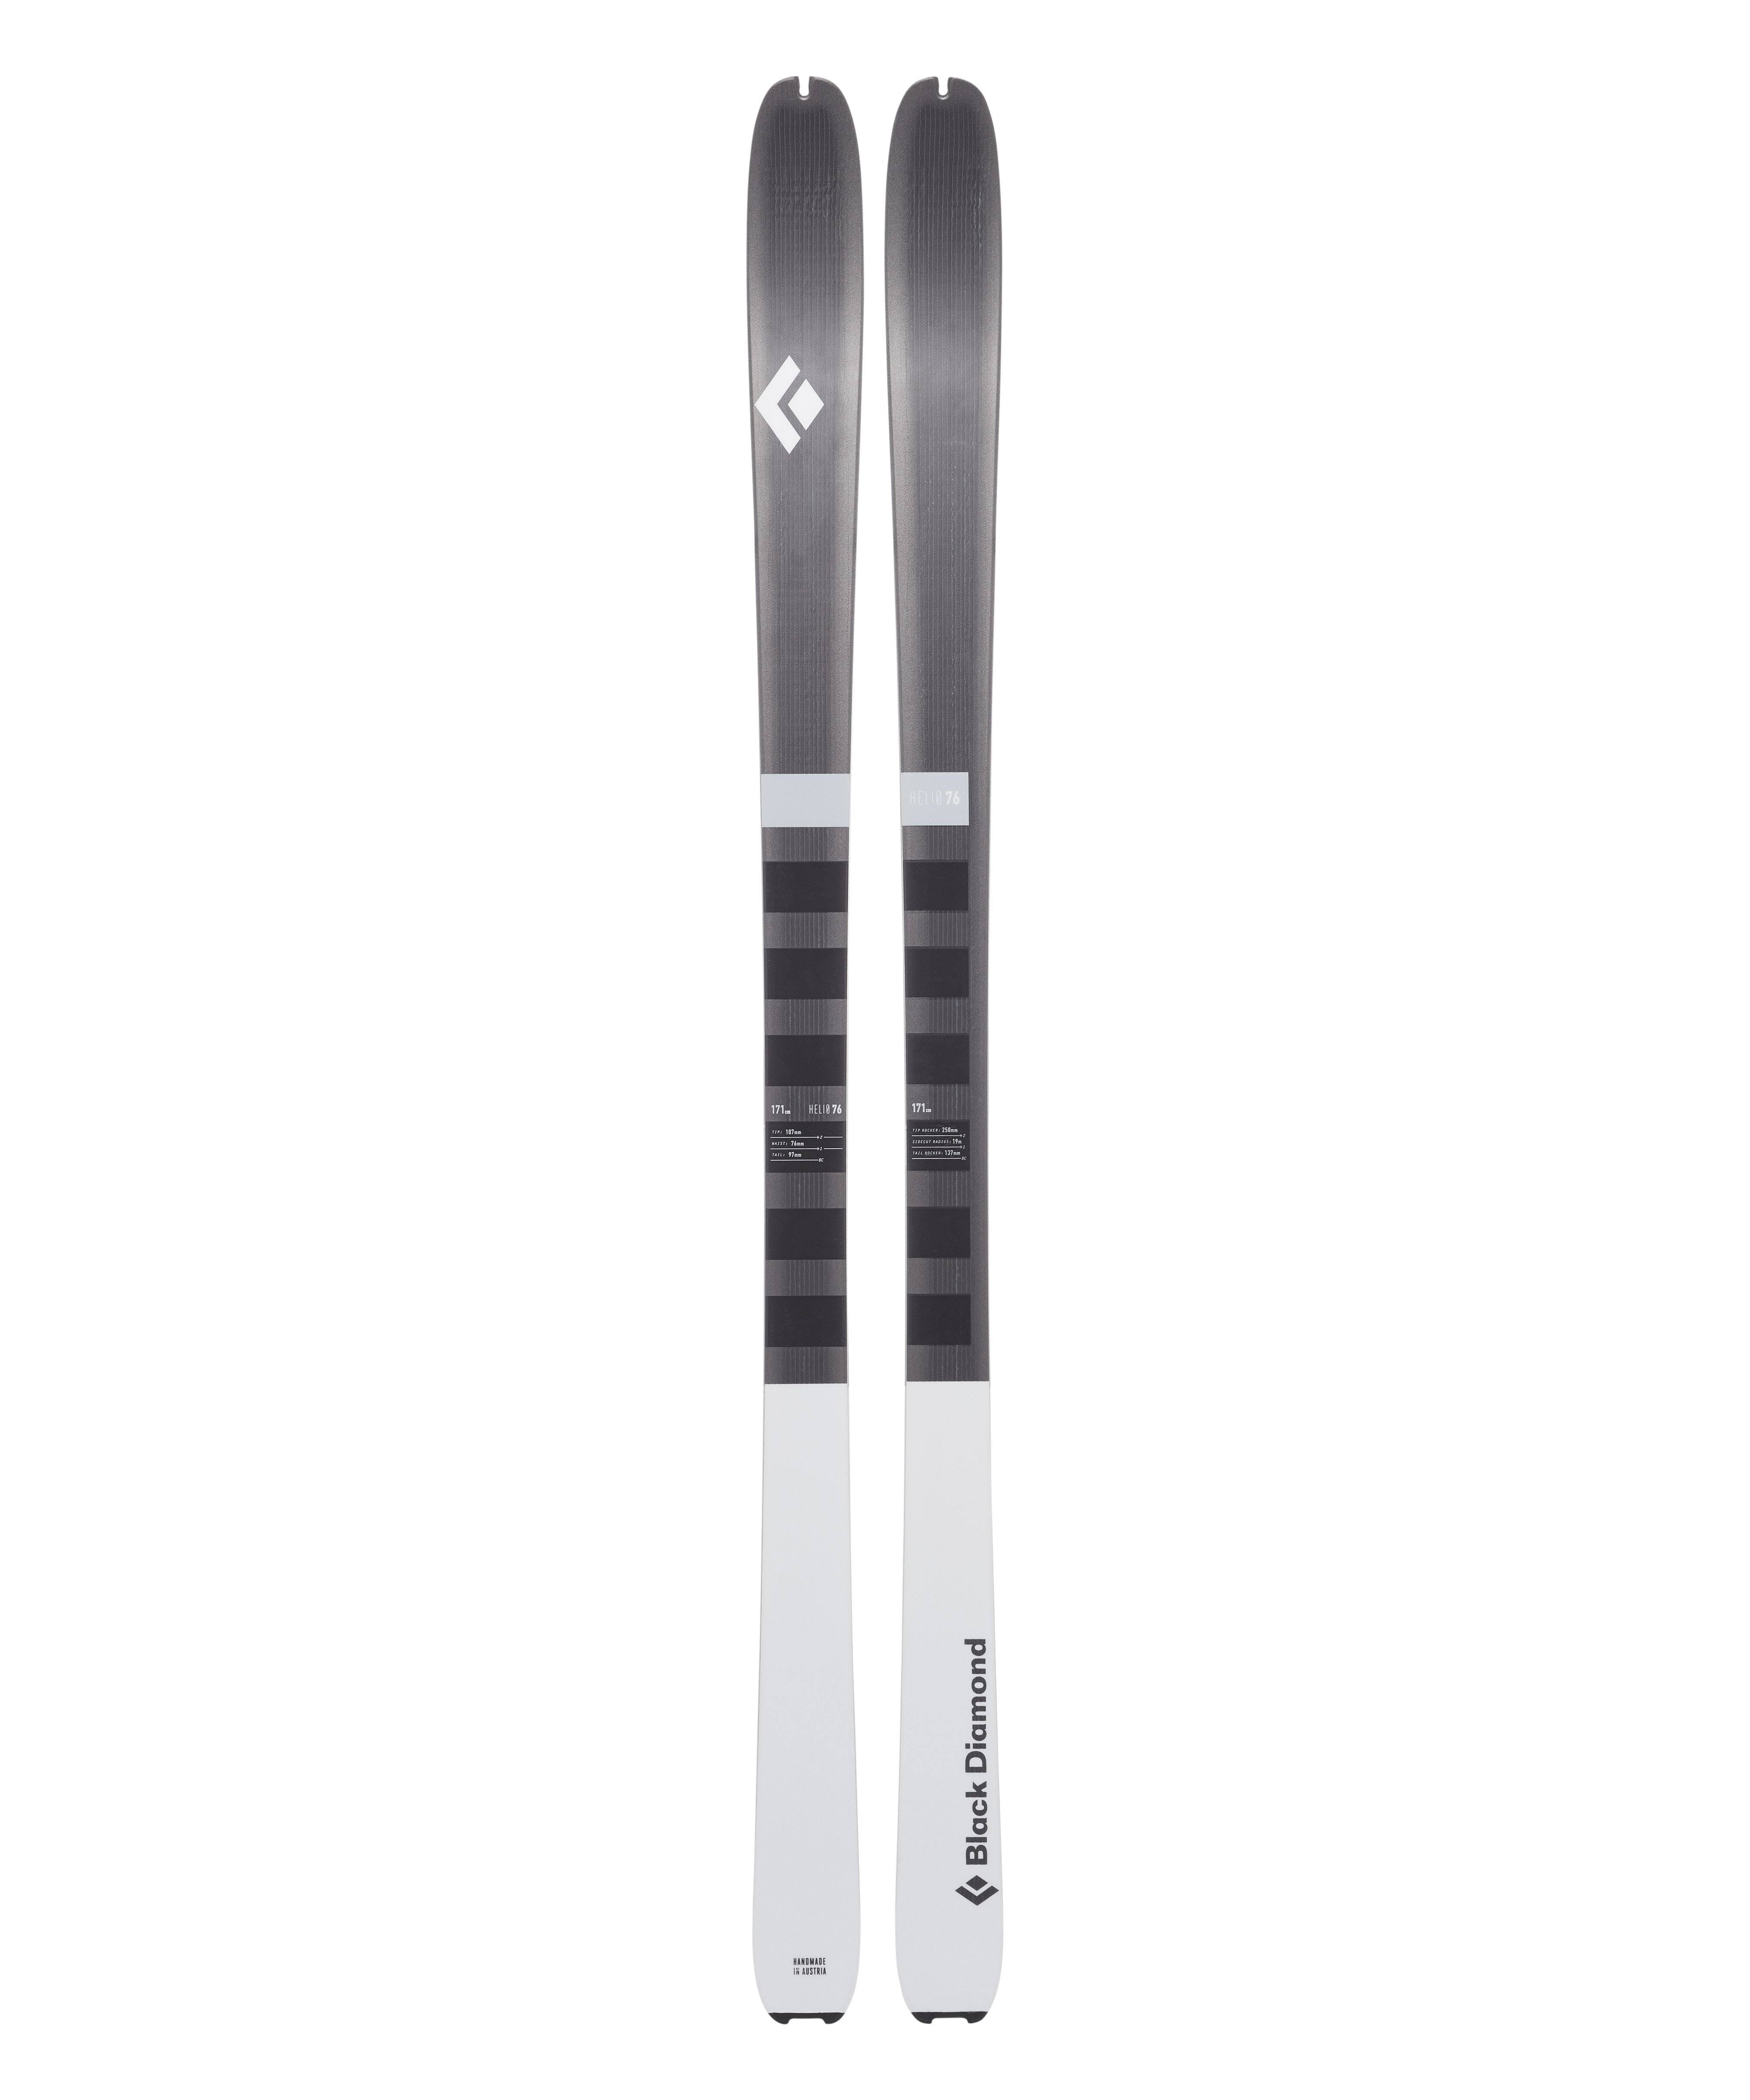 Black Diamond Helio 76 Skis